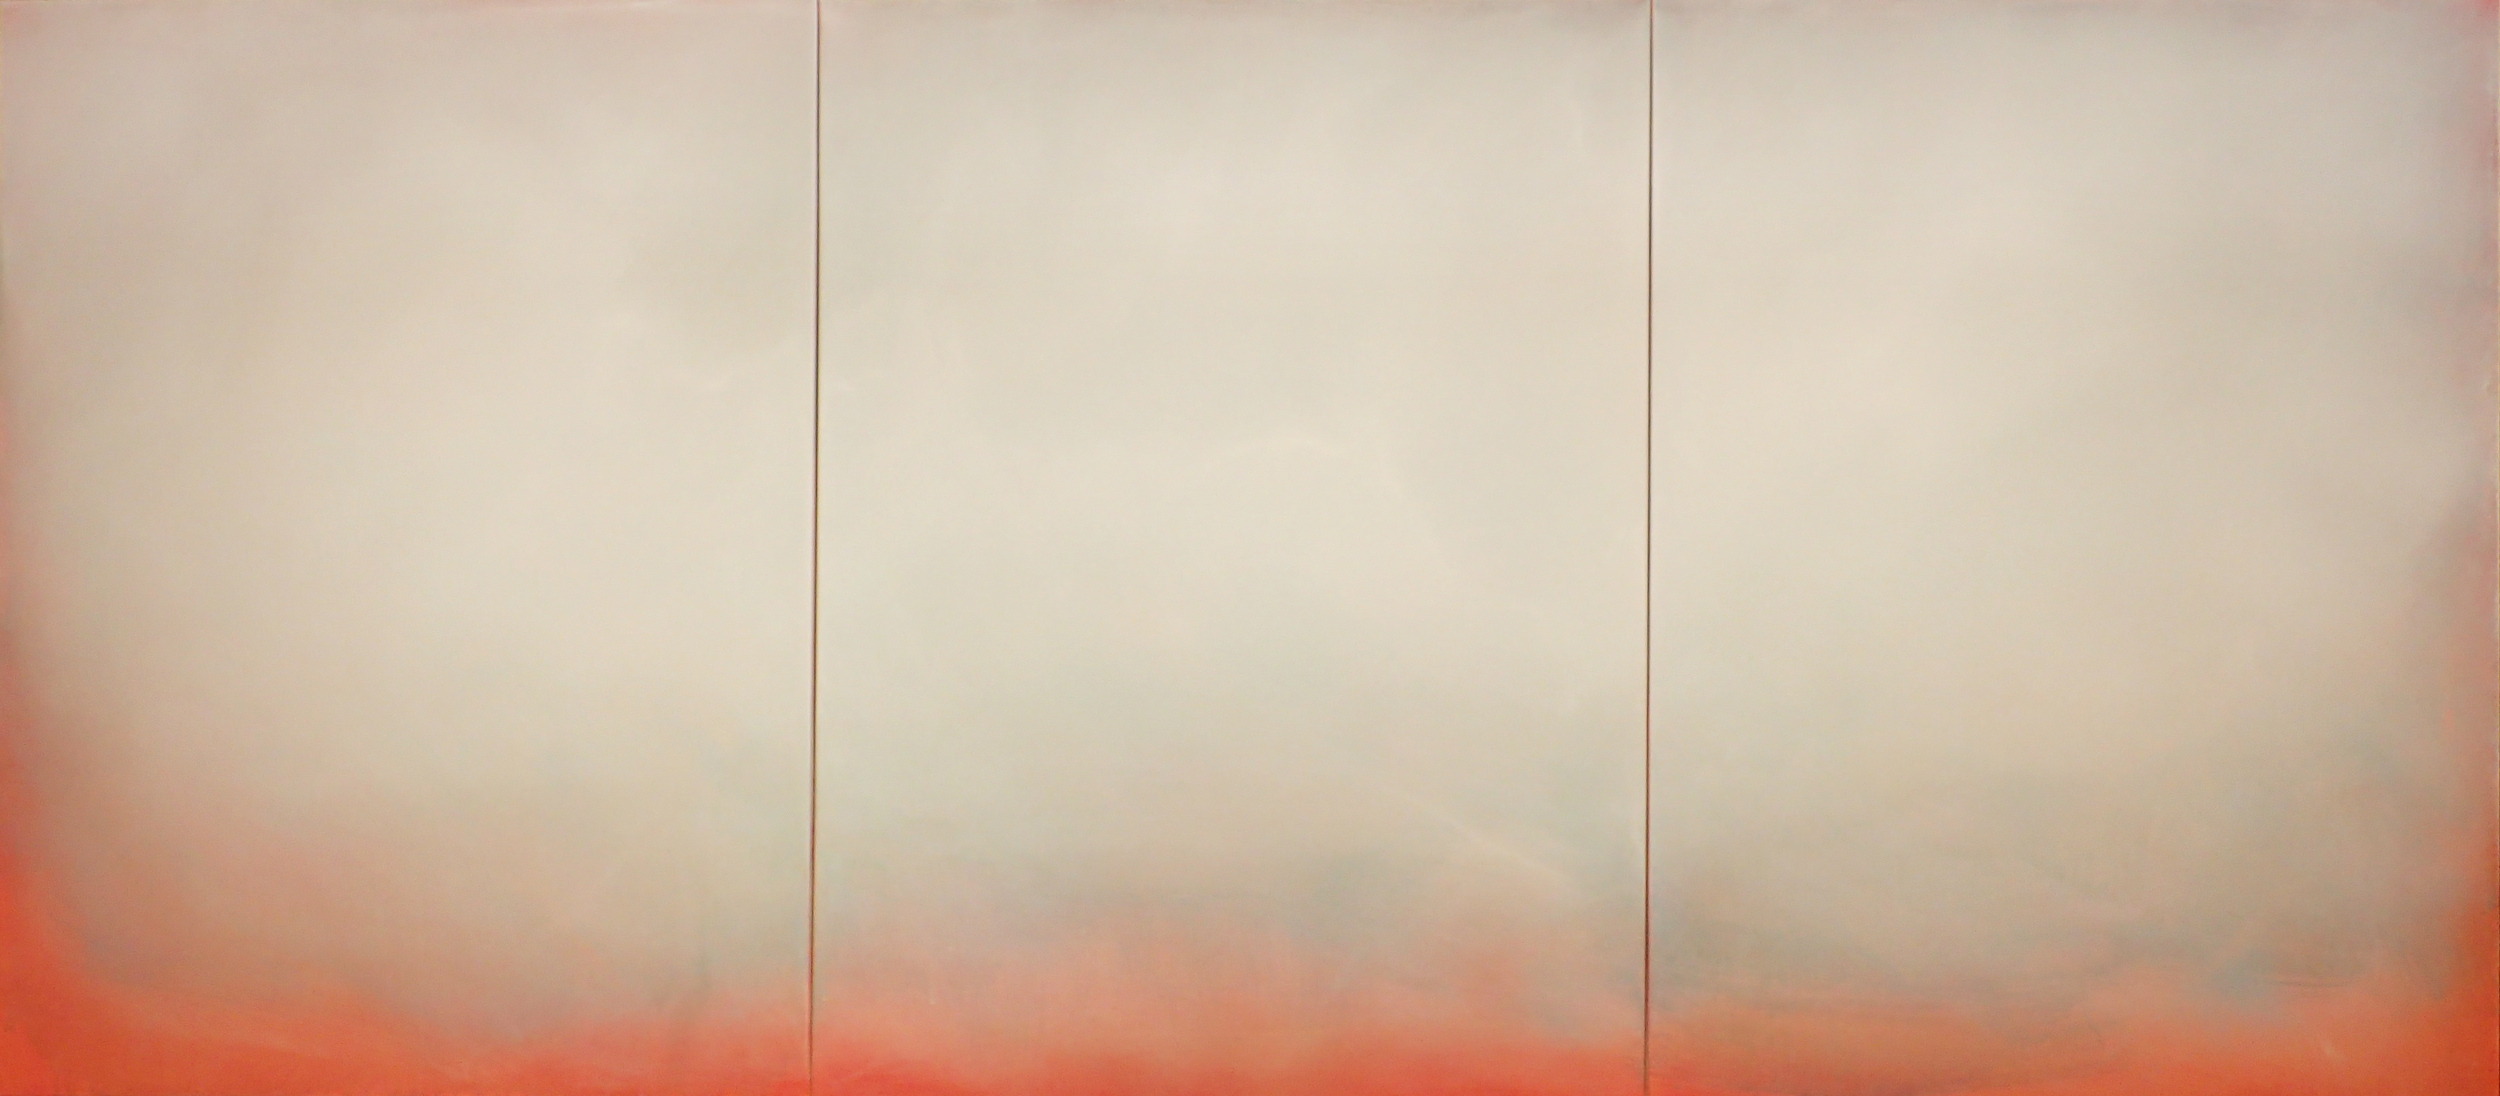 """The Memories I Wanted to Make, 2014, acrylic on canvas, 40"""" x 90"""""""